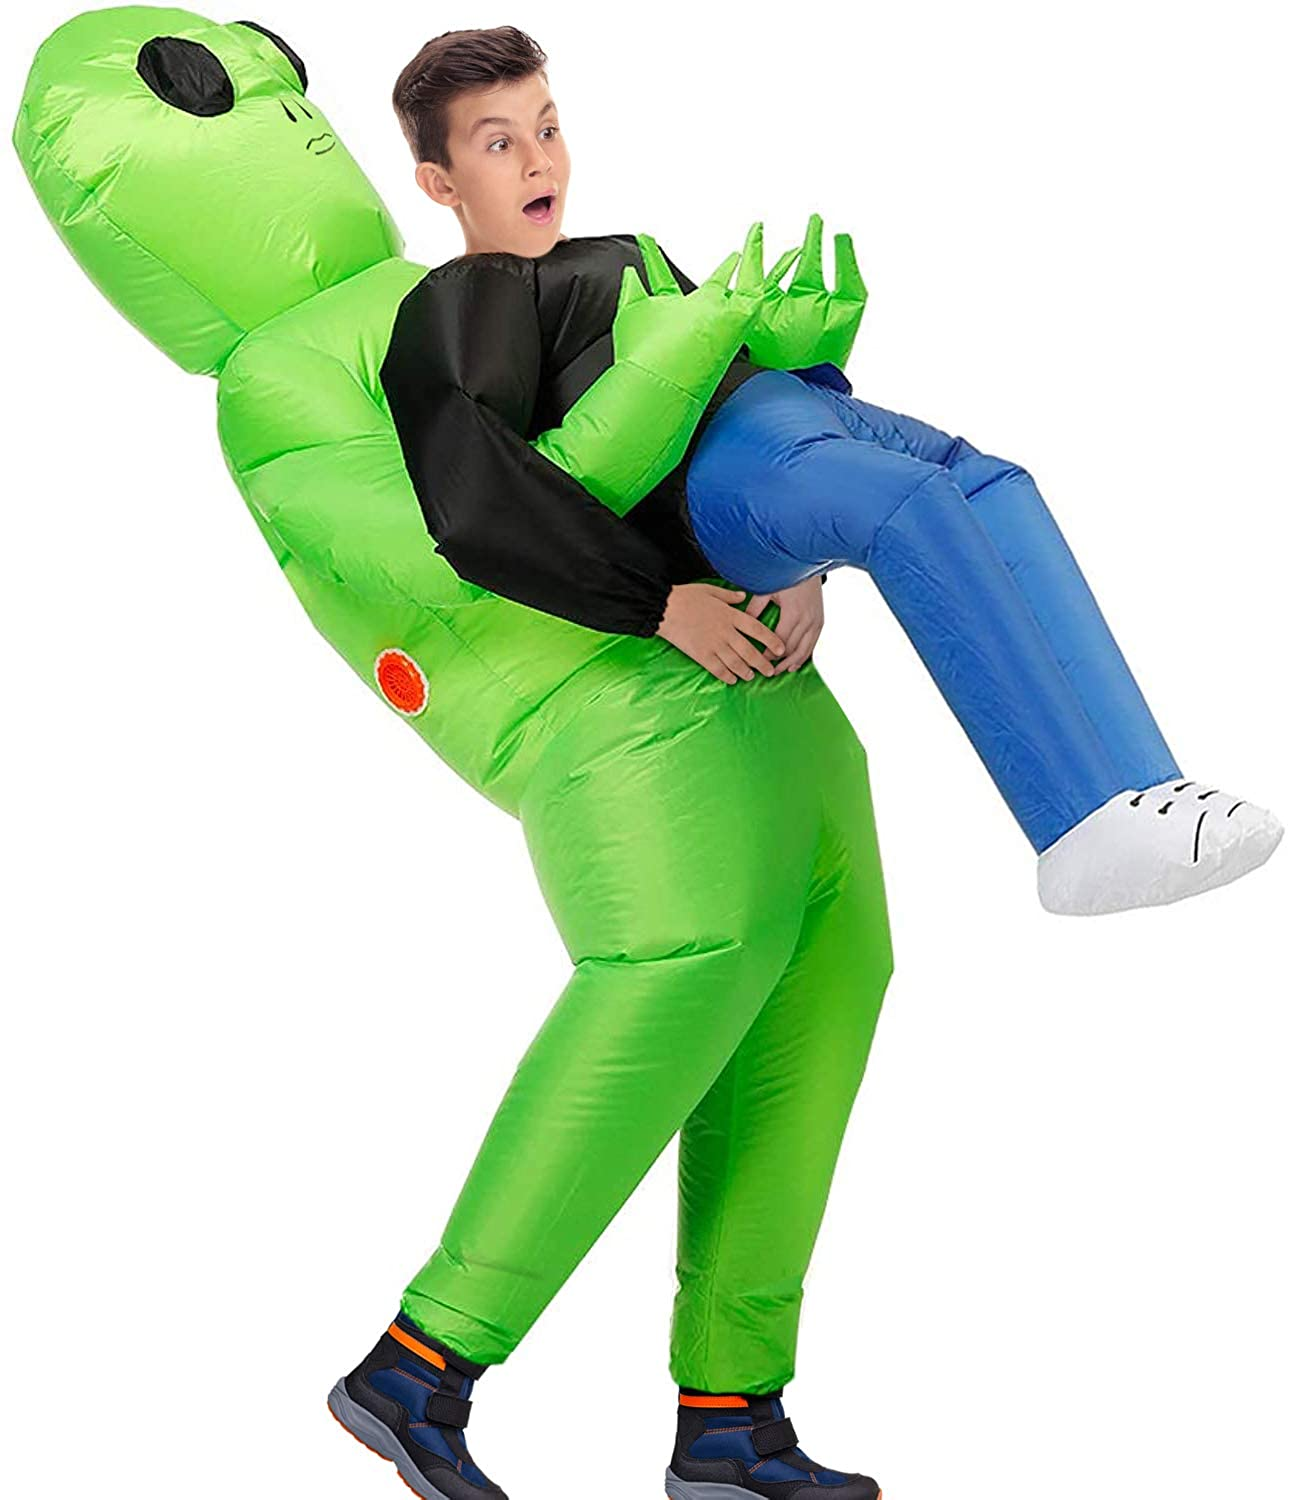 MH Zone Inflatable Alien Costume for Kids Funny Halloween Costumes Cosplay Fantasy Costume (Child Alien)